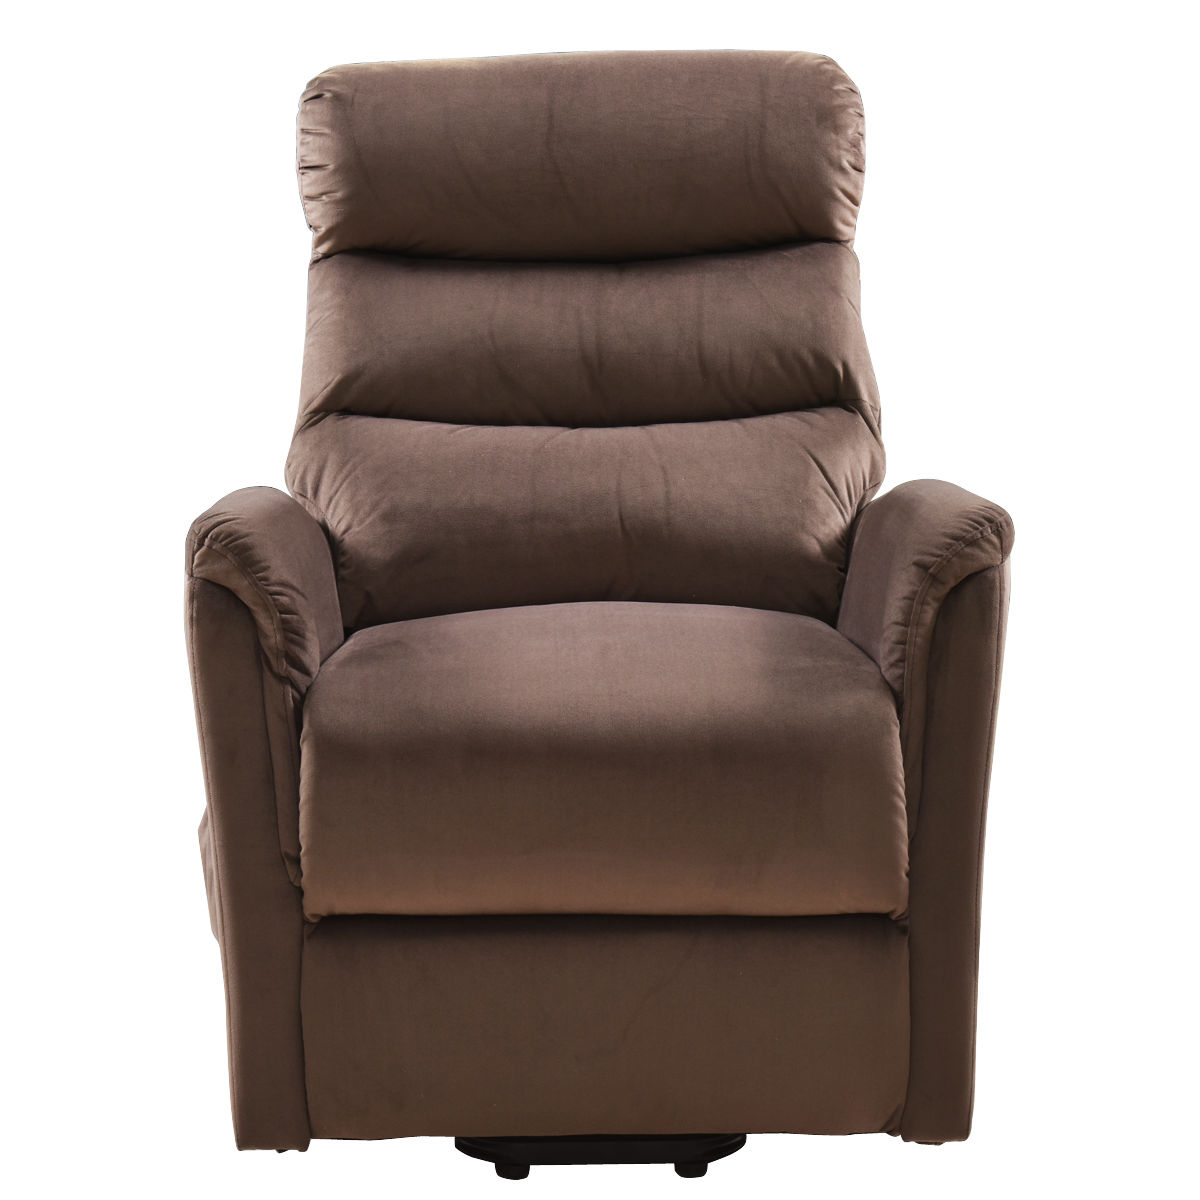 Does Medicare Cover Lift Chairs Electric Lift Chair Recliner